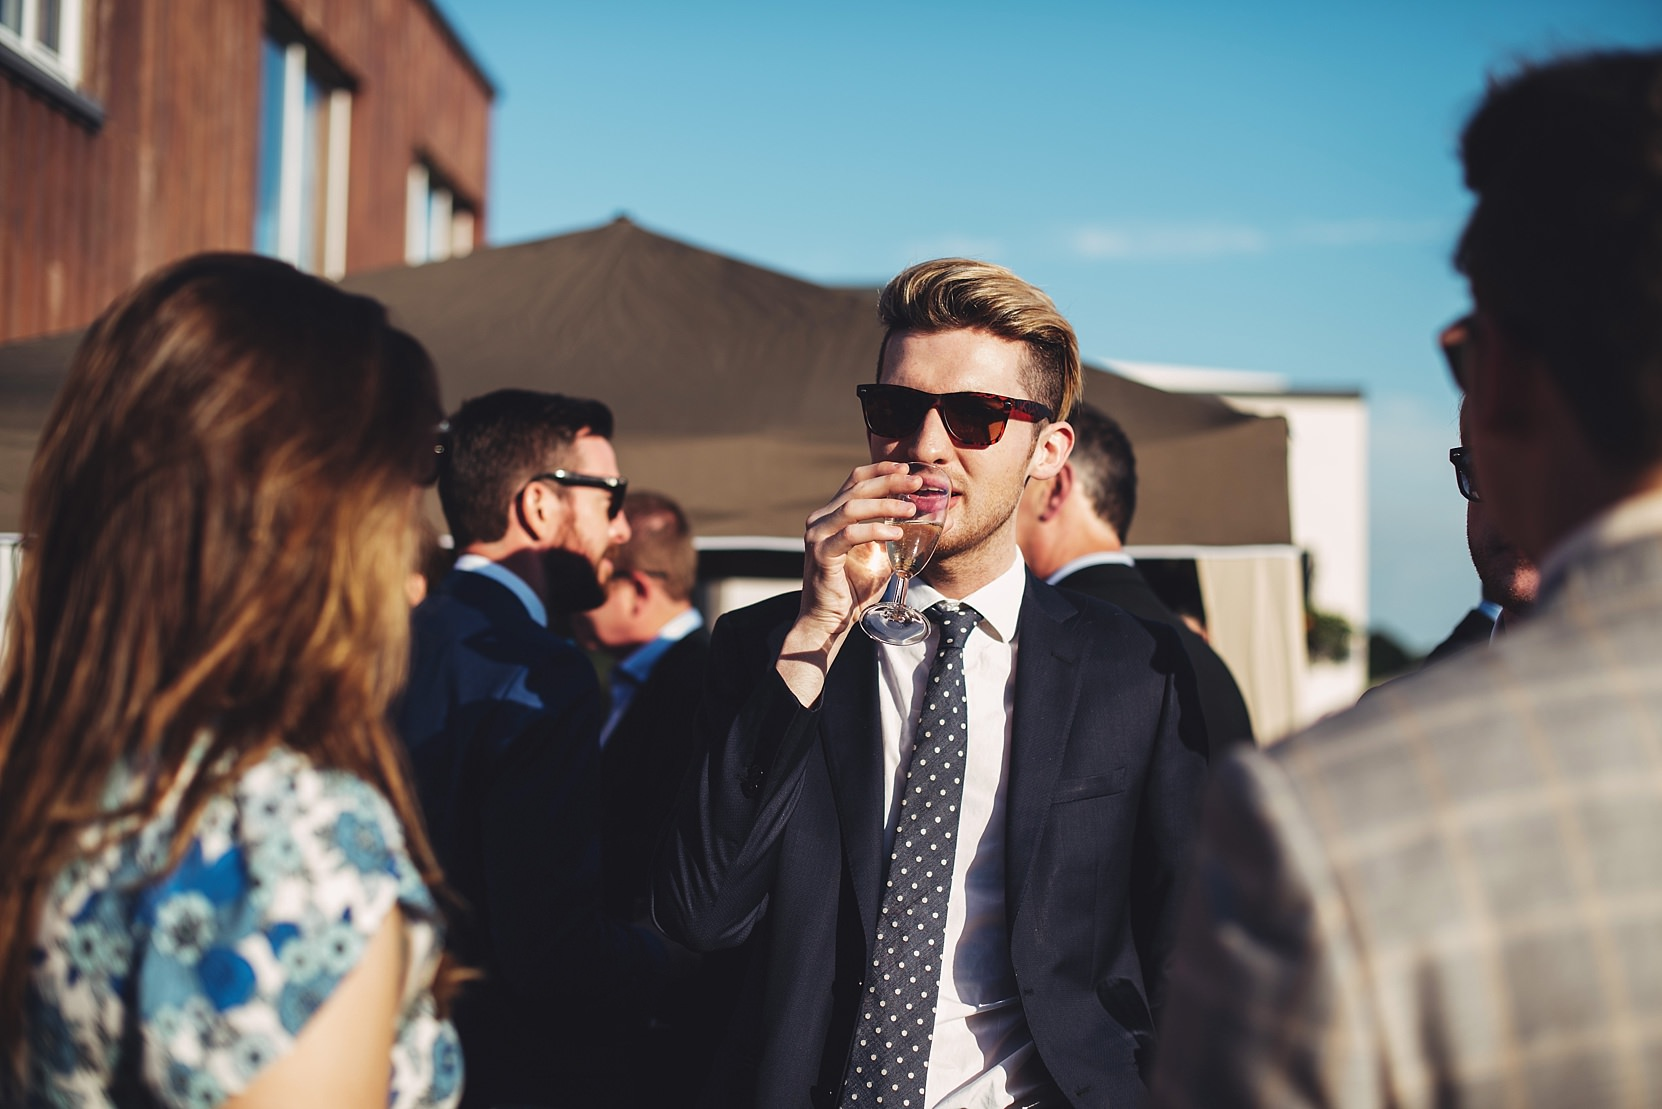 A man with good style at a wedding